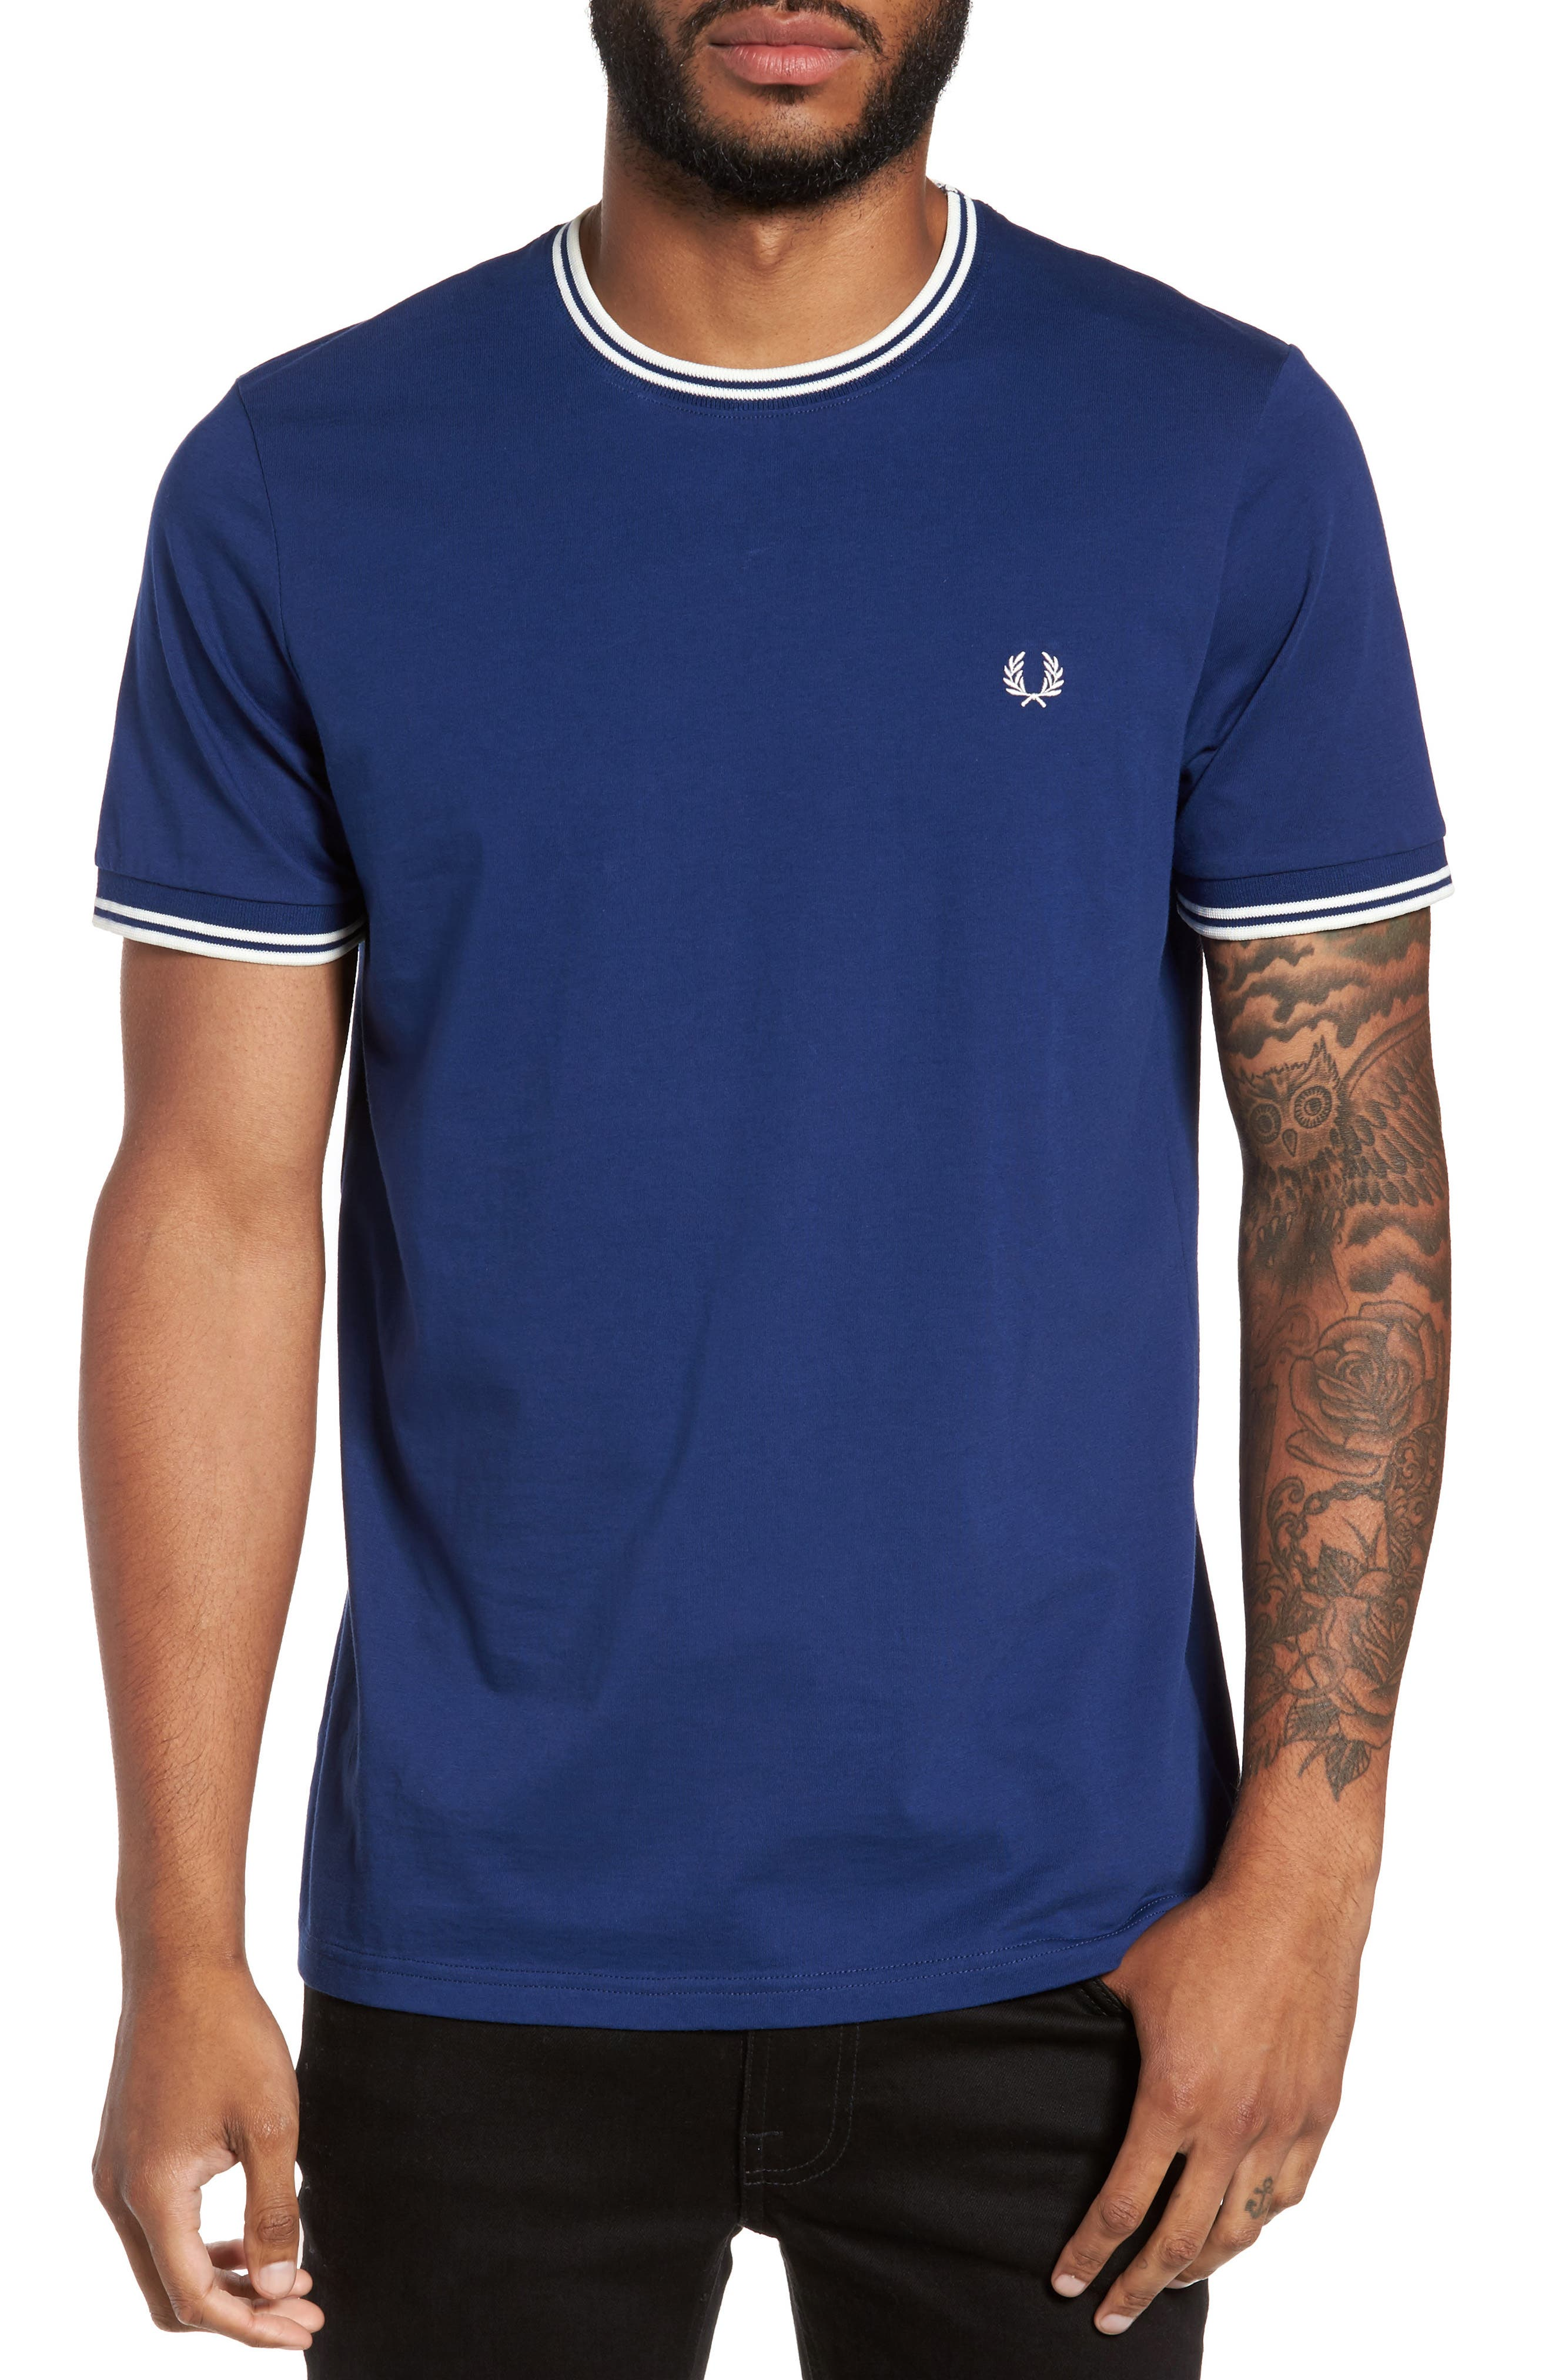 Alternate Image 1 Selected - Fred Perry Contrast Trim T-Shirt